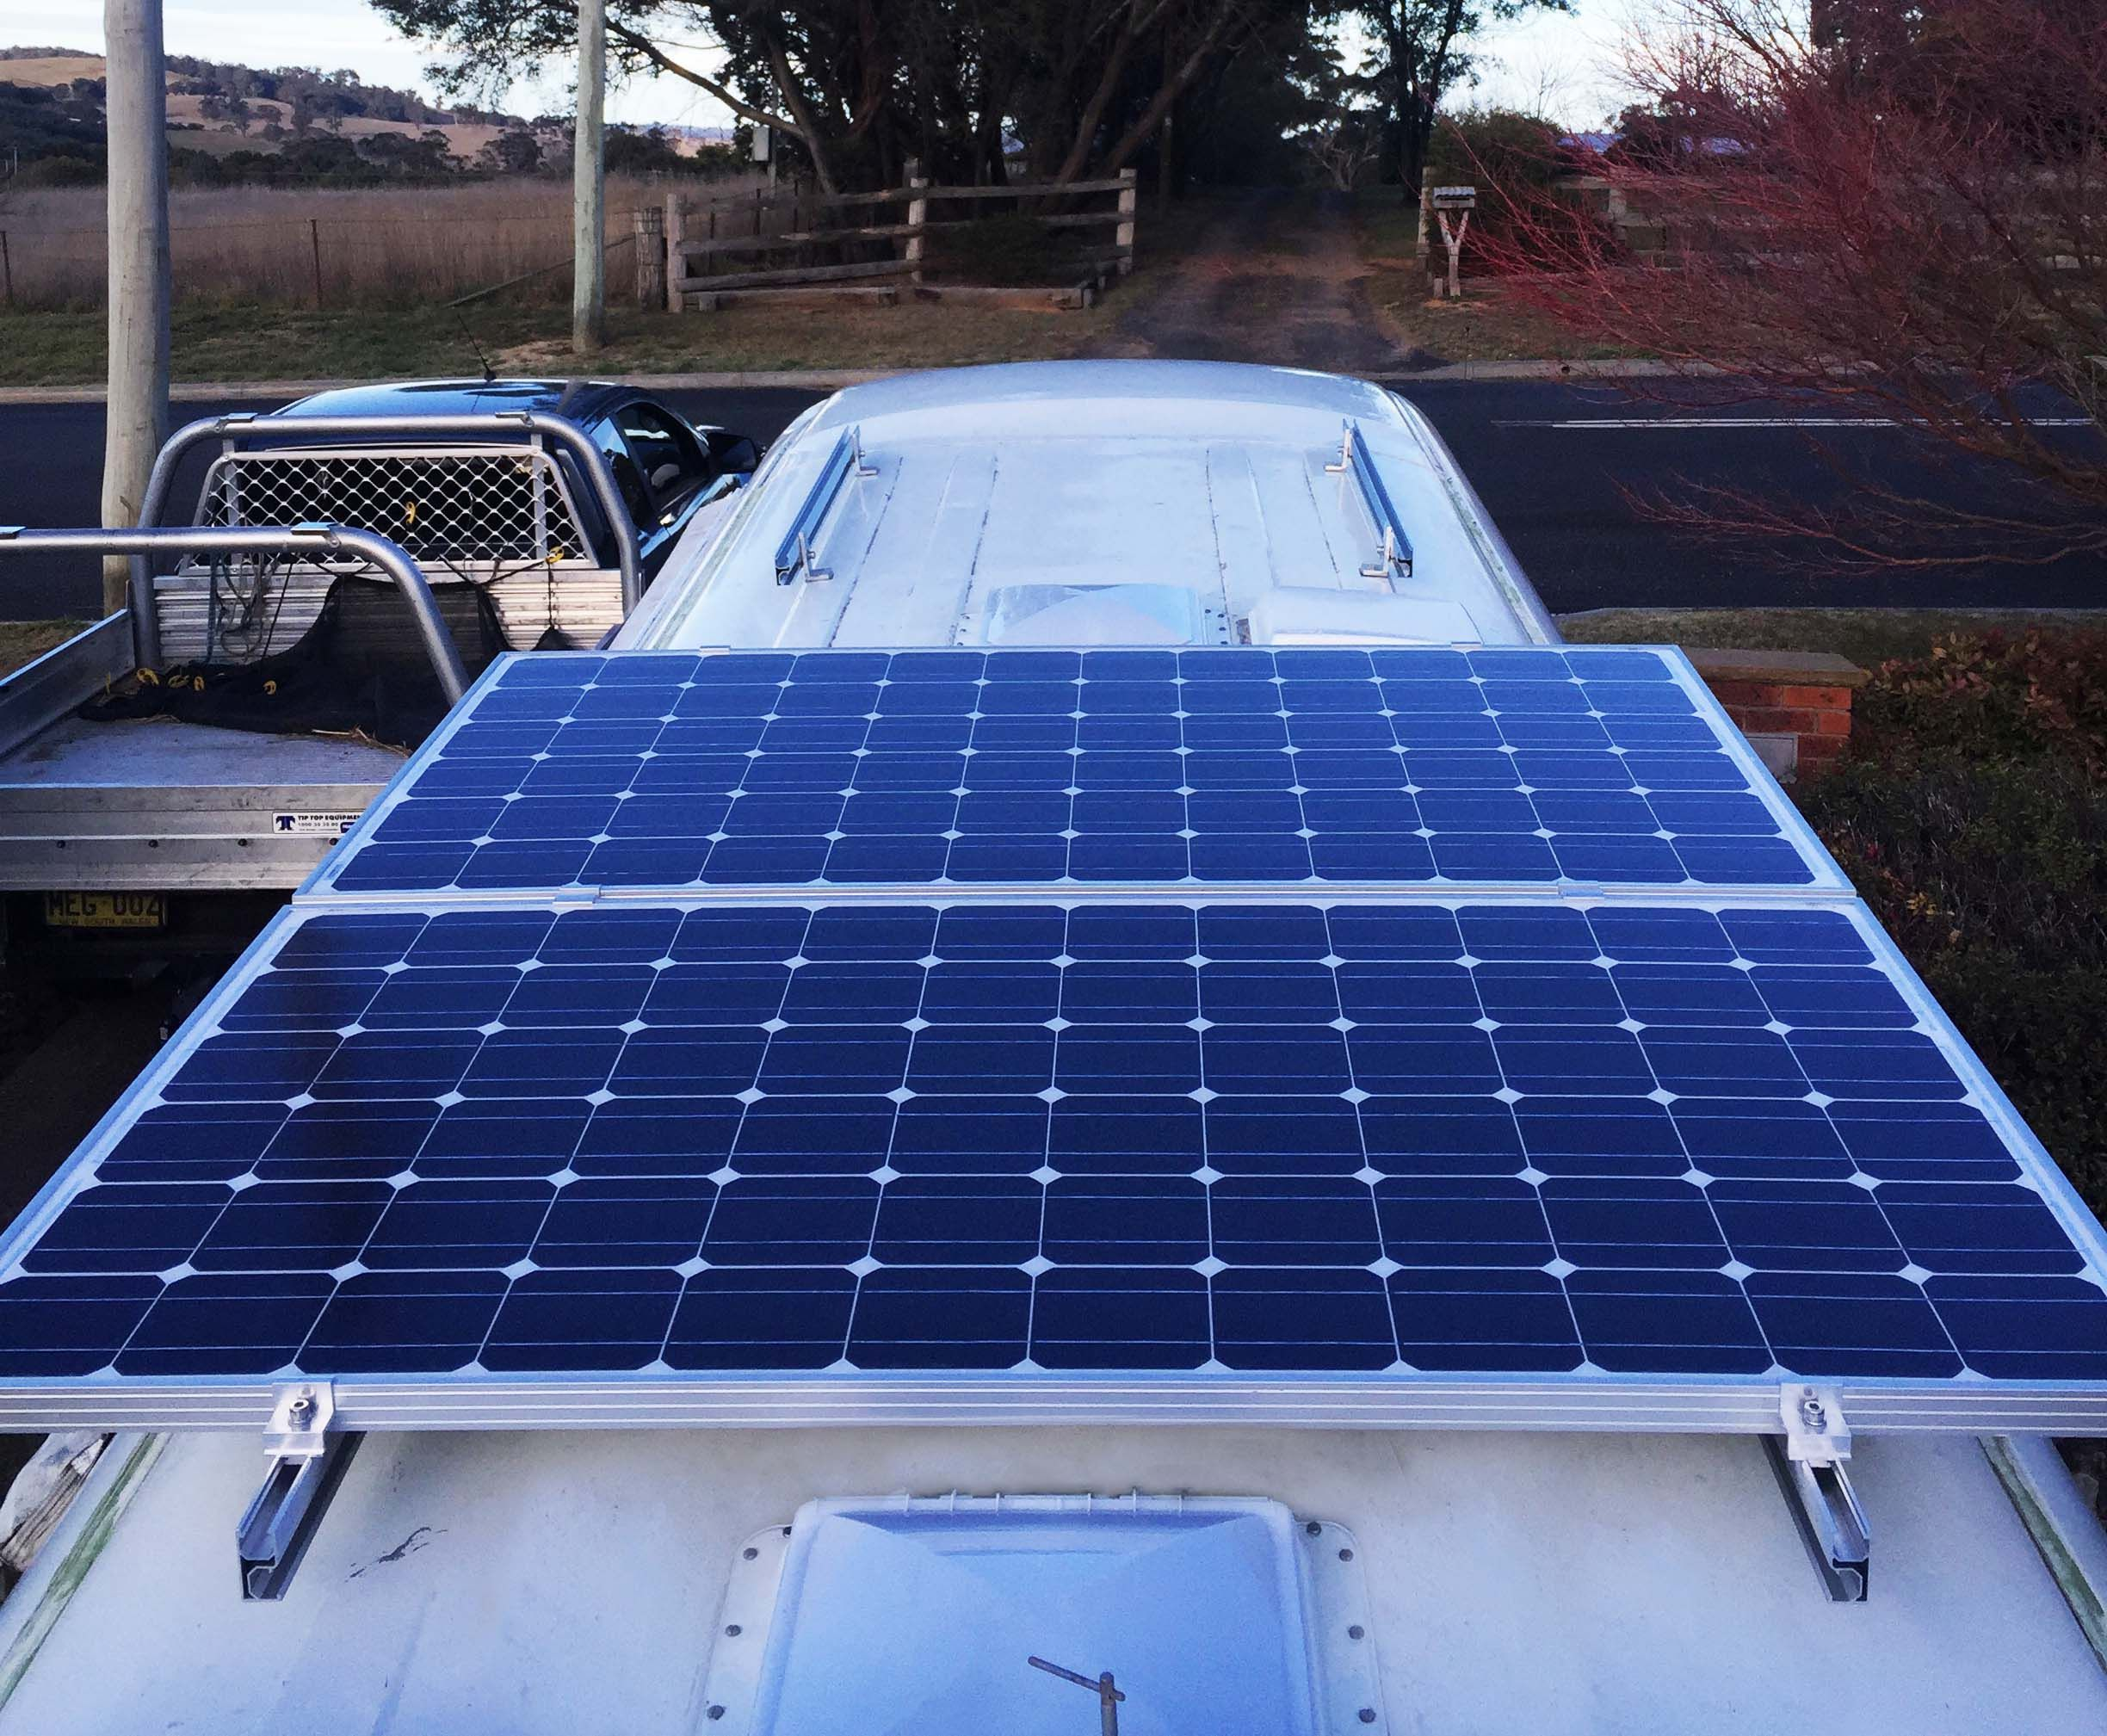 2x 220 Watt Panels We Ve Since Added A 3rd To The Front Mounting Racks As Well To Give Us 660 Watts We Us Solar Panel Cost Solar Panels For Home Solar Panels